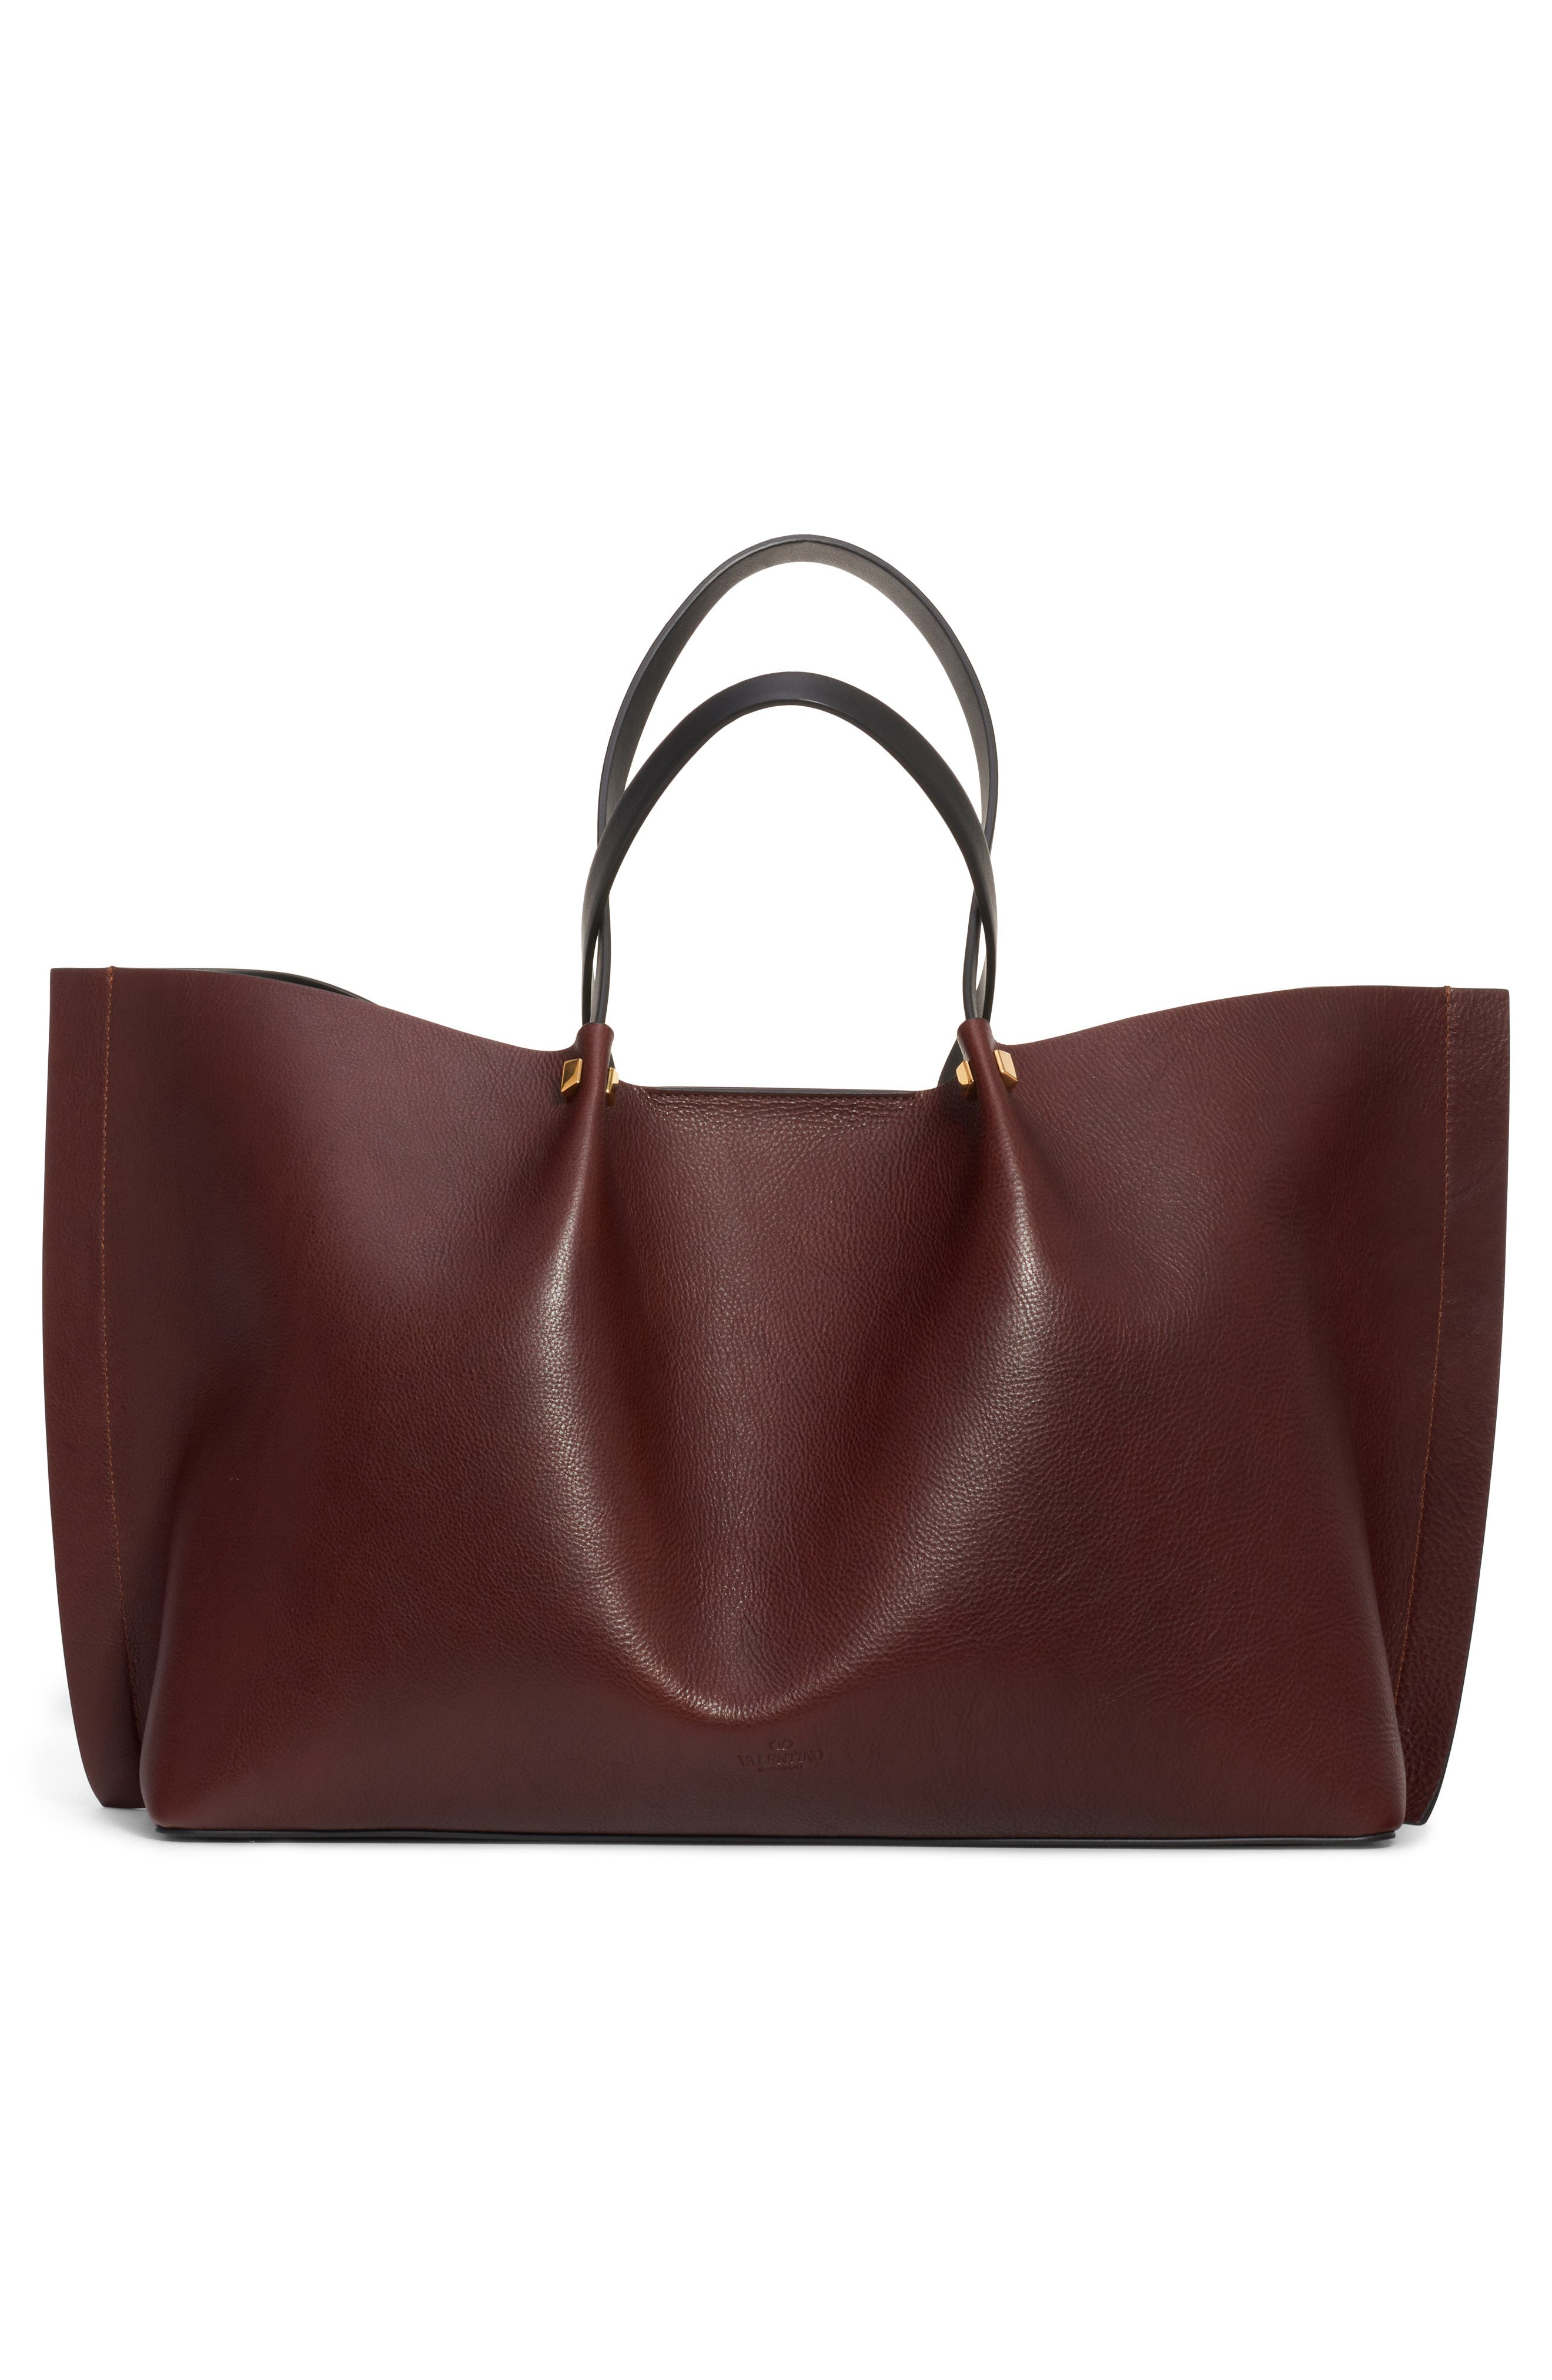 Large Go Logo Leather Tote,                             Alternate thumbnail 2, color,                             MORO/ NERO/ ROUGE PUR